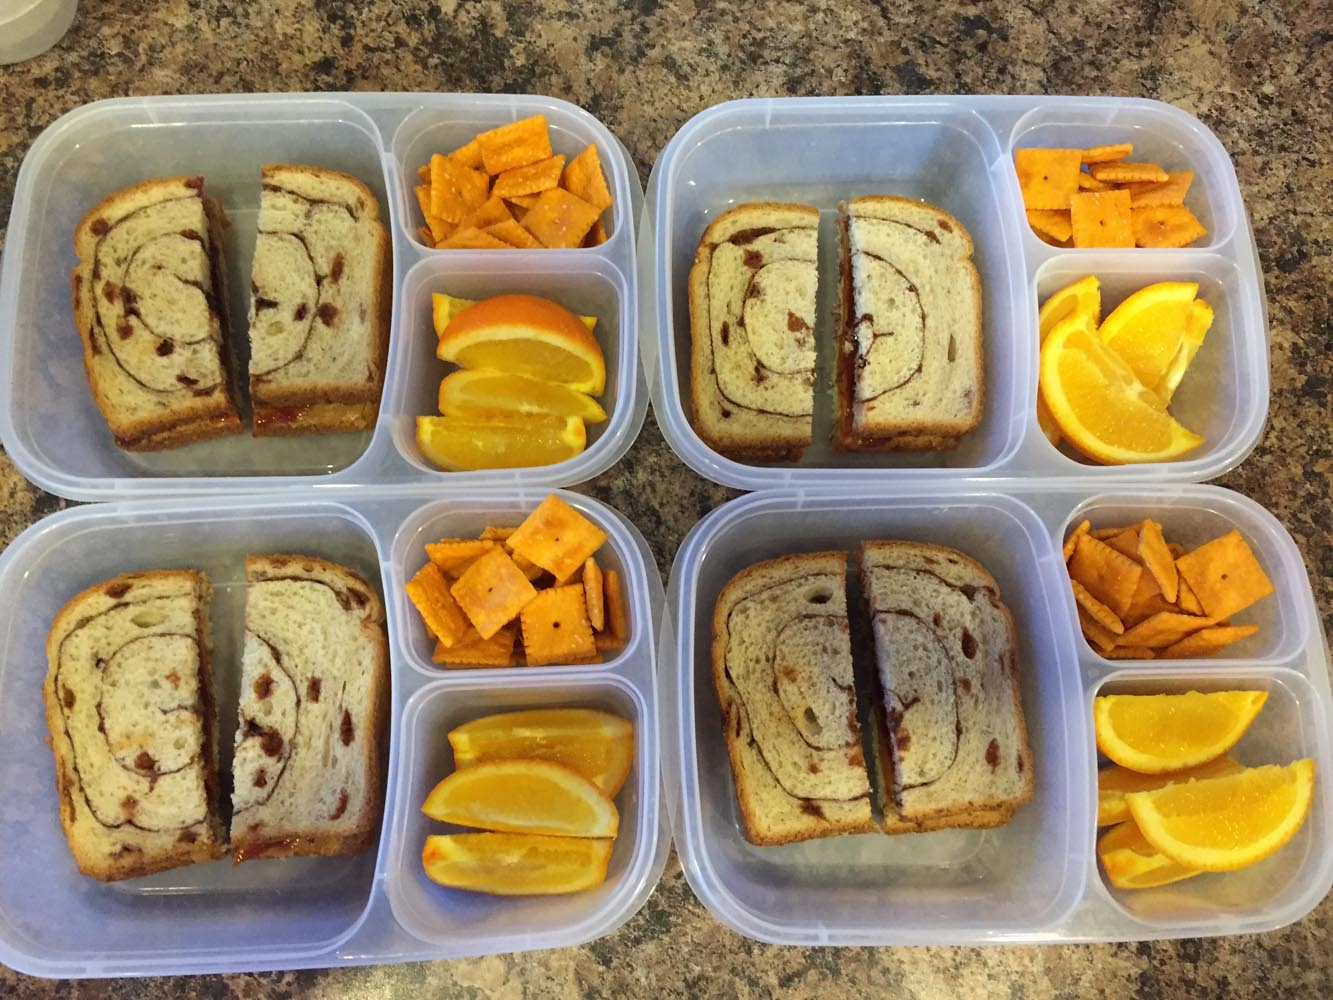 Cinnamon-Swirl PB&J, Orange Slices, Cheese-ITs